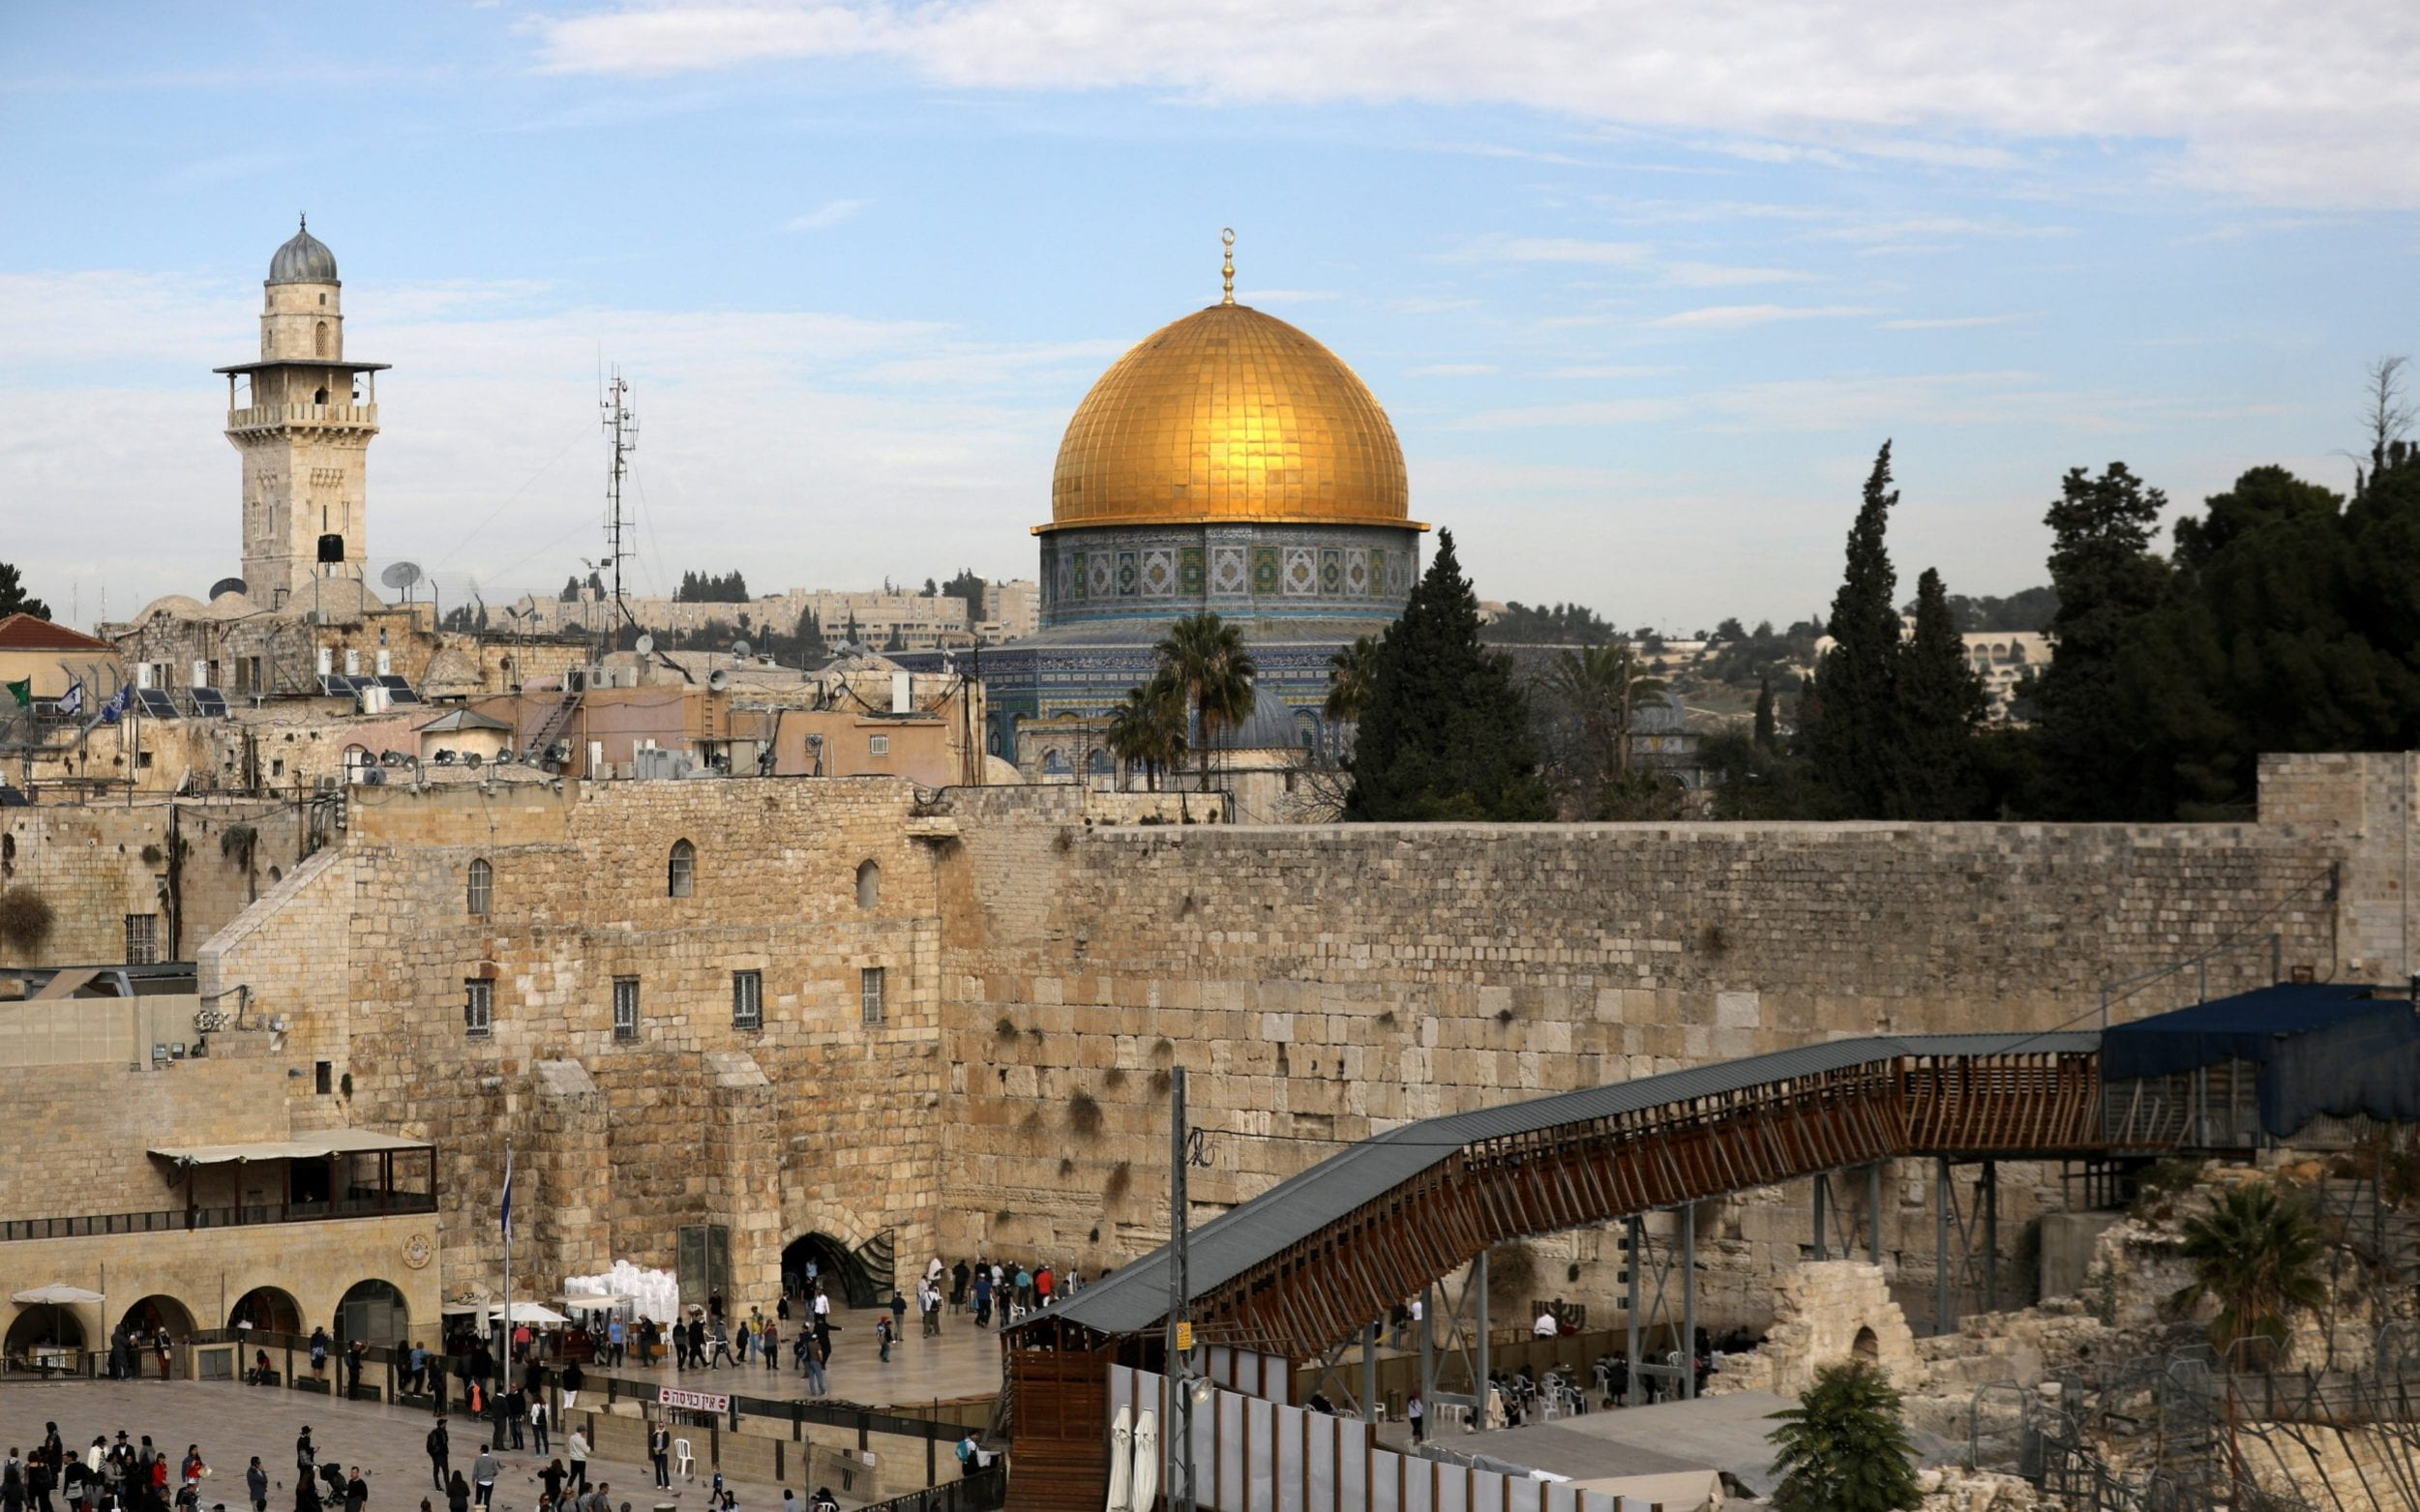 The Western Wall, Judaism's holiest prayer site, in the foreground